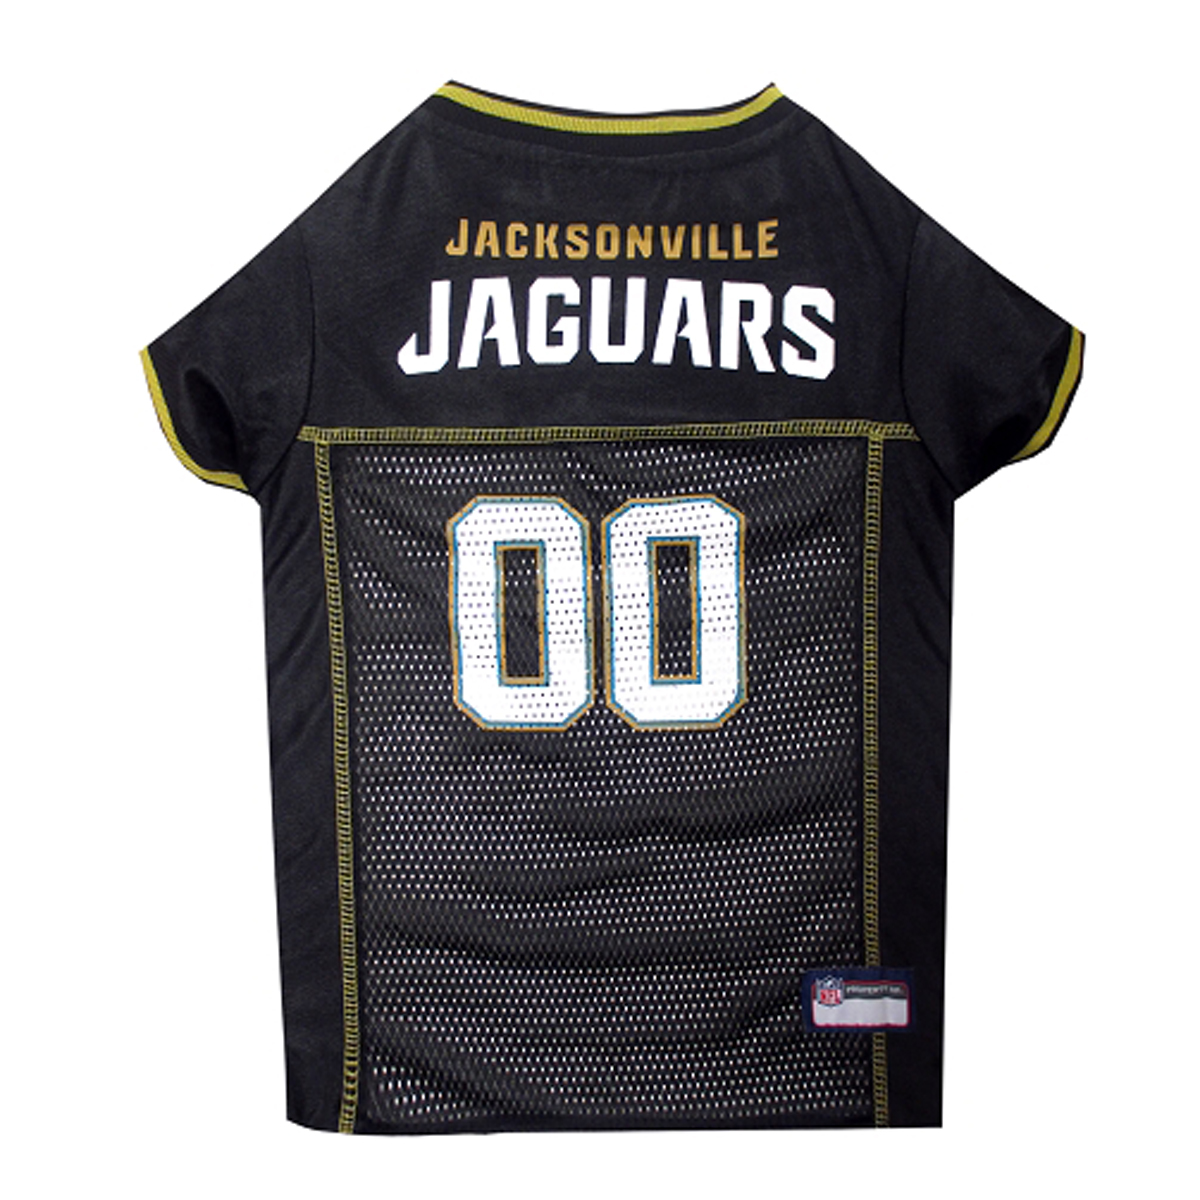 Jacksonville Jaguars Officially Licensed Dog Jersey - Black with Gold Trim